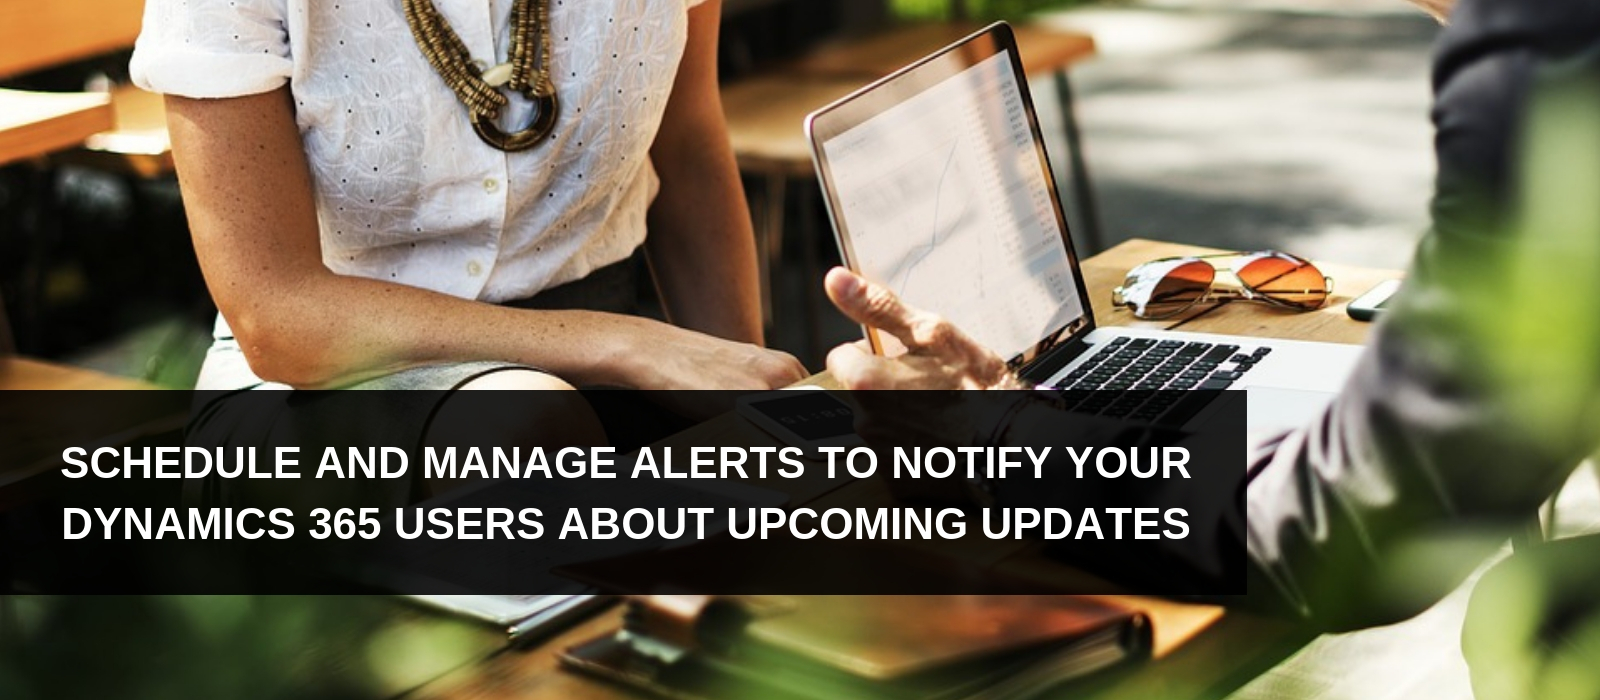 Schedule and Manage Alerts in Dynamics 365 CRM | Alerts4Dynamics